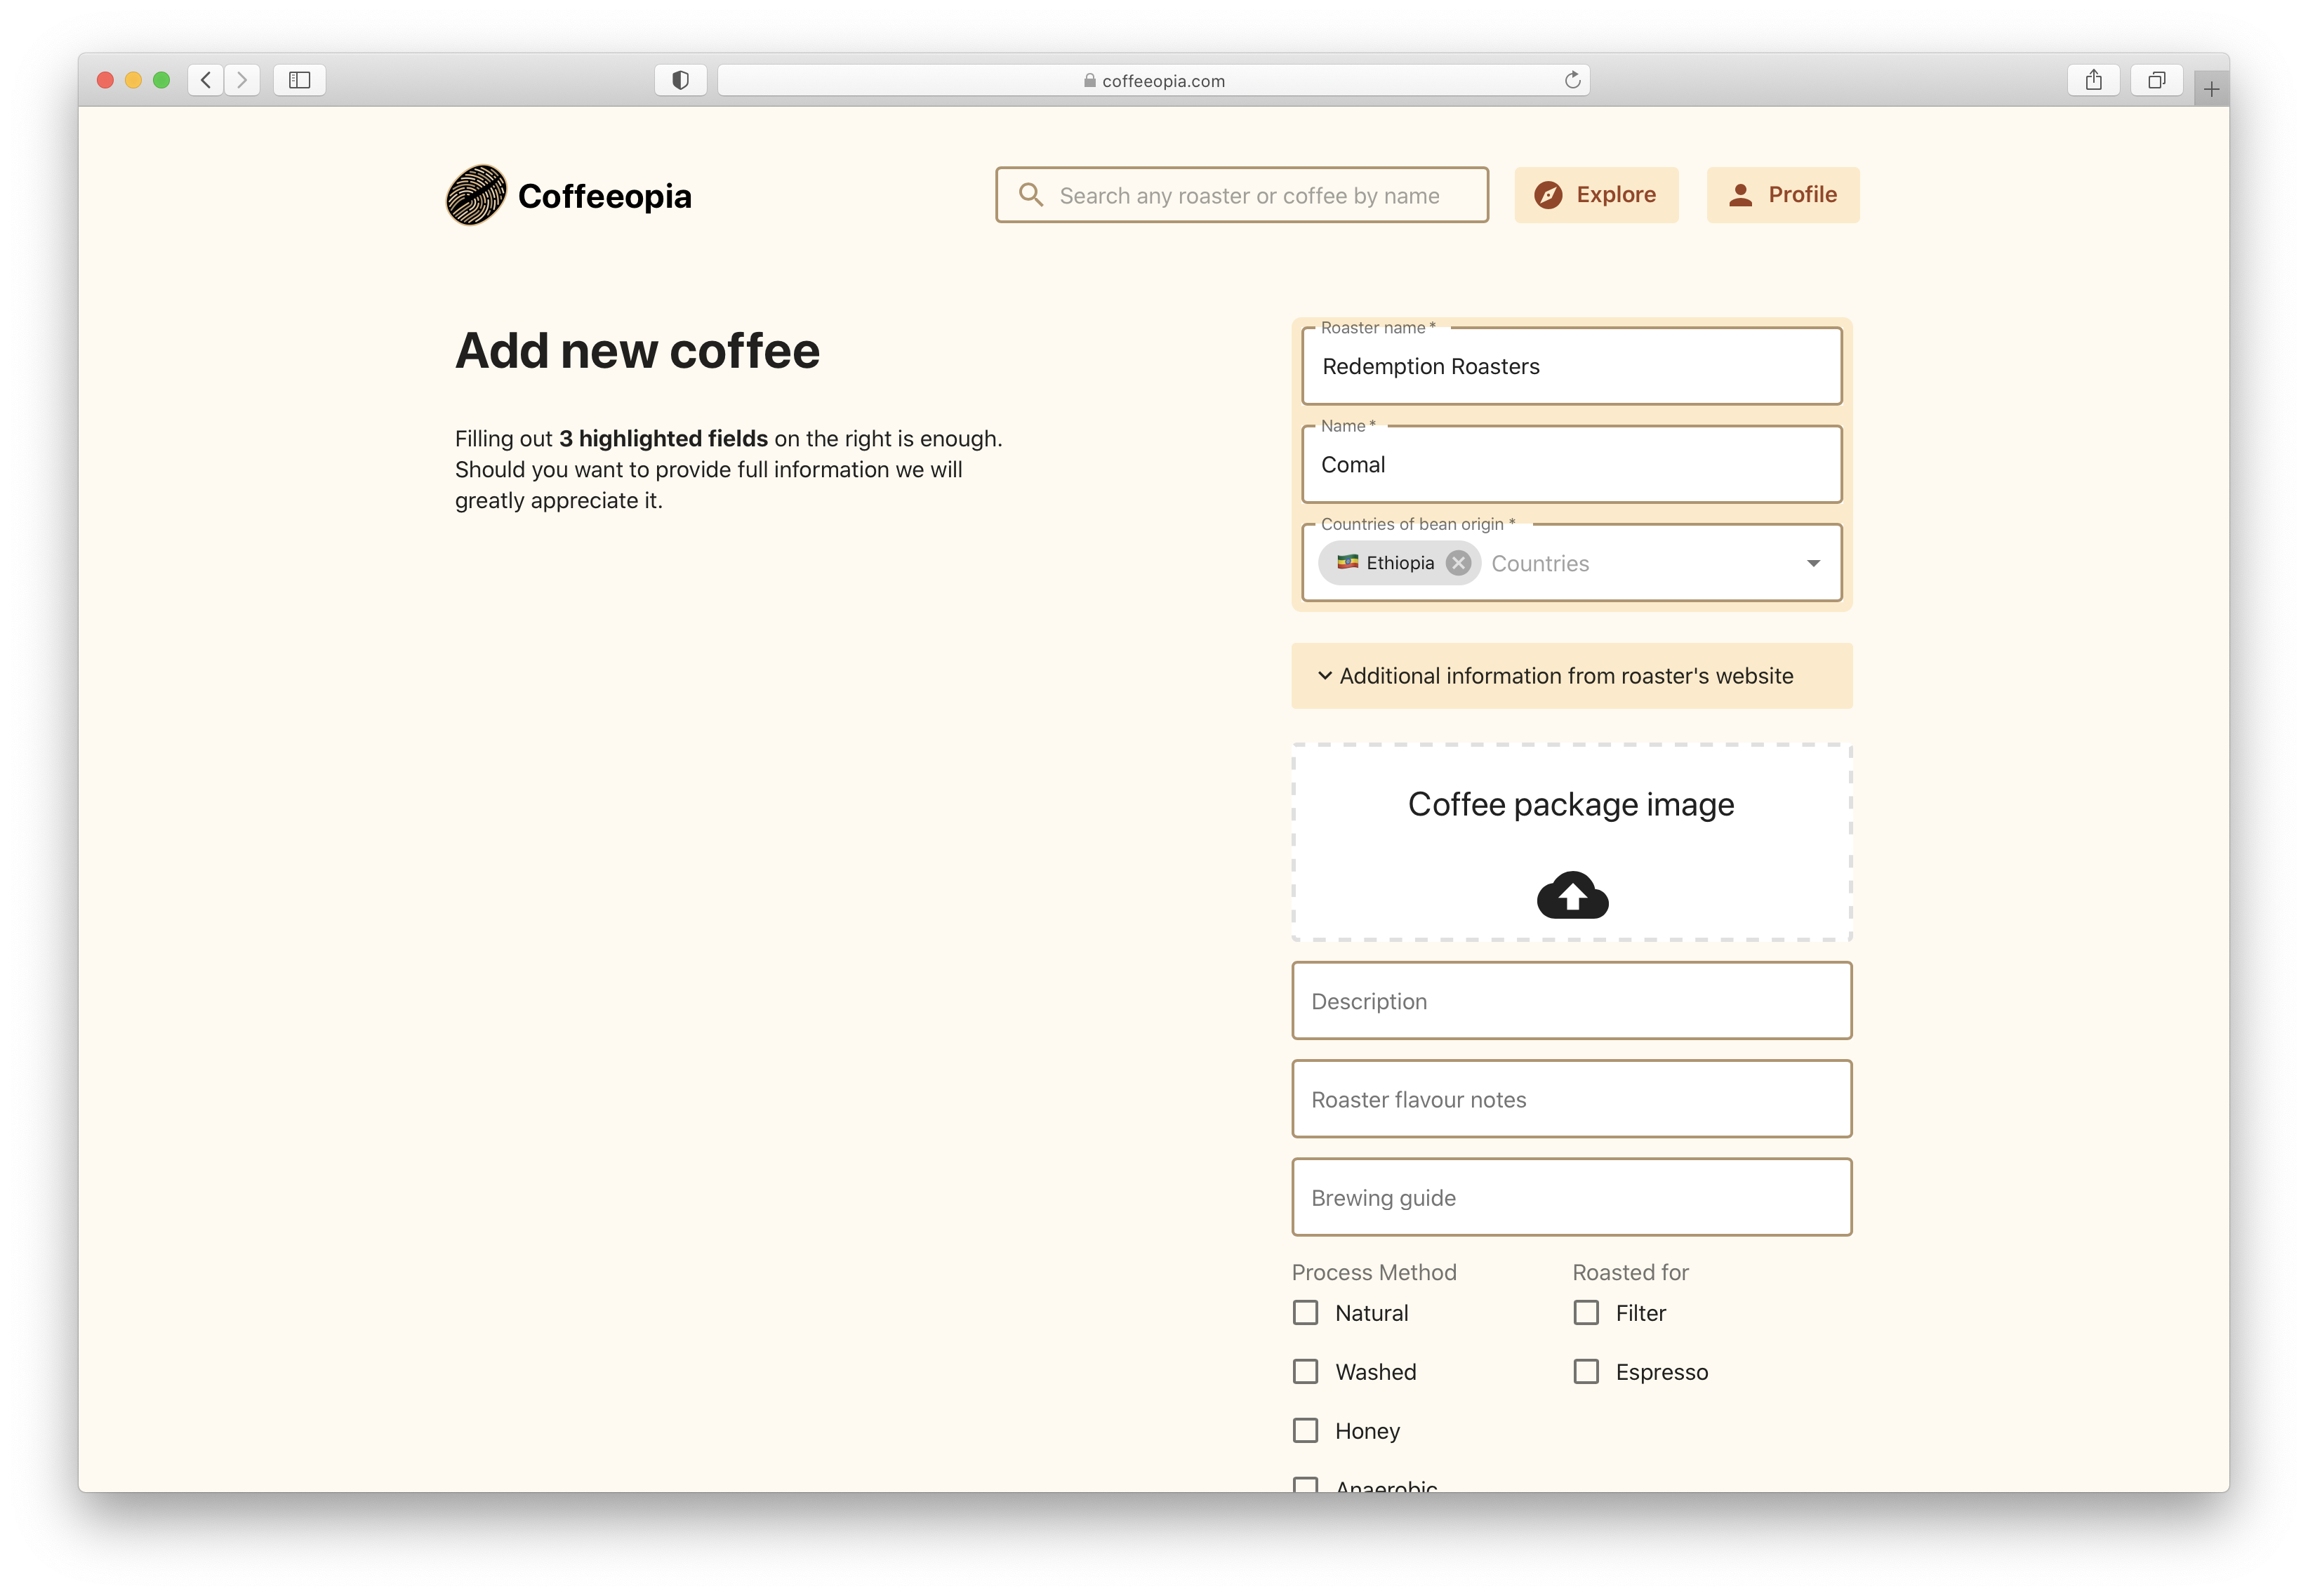 All fields for the coffee item to be added on Coffeopia